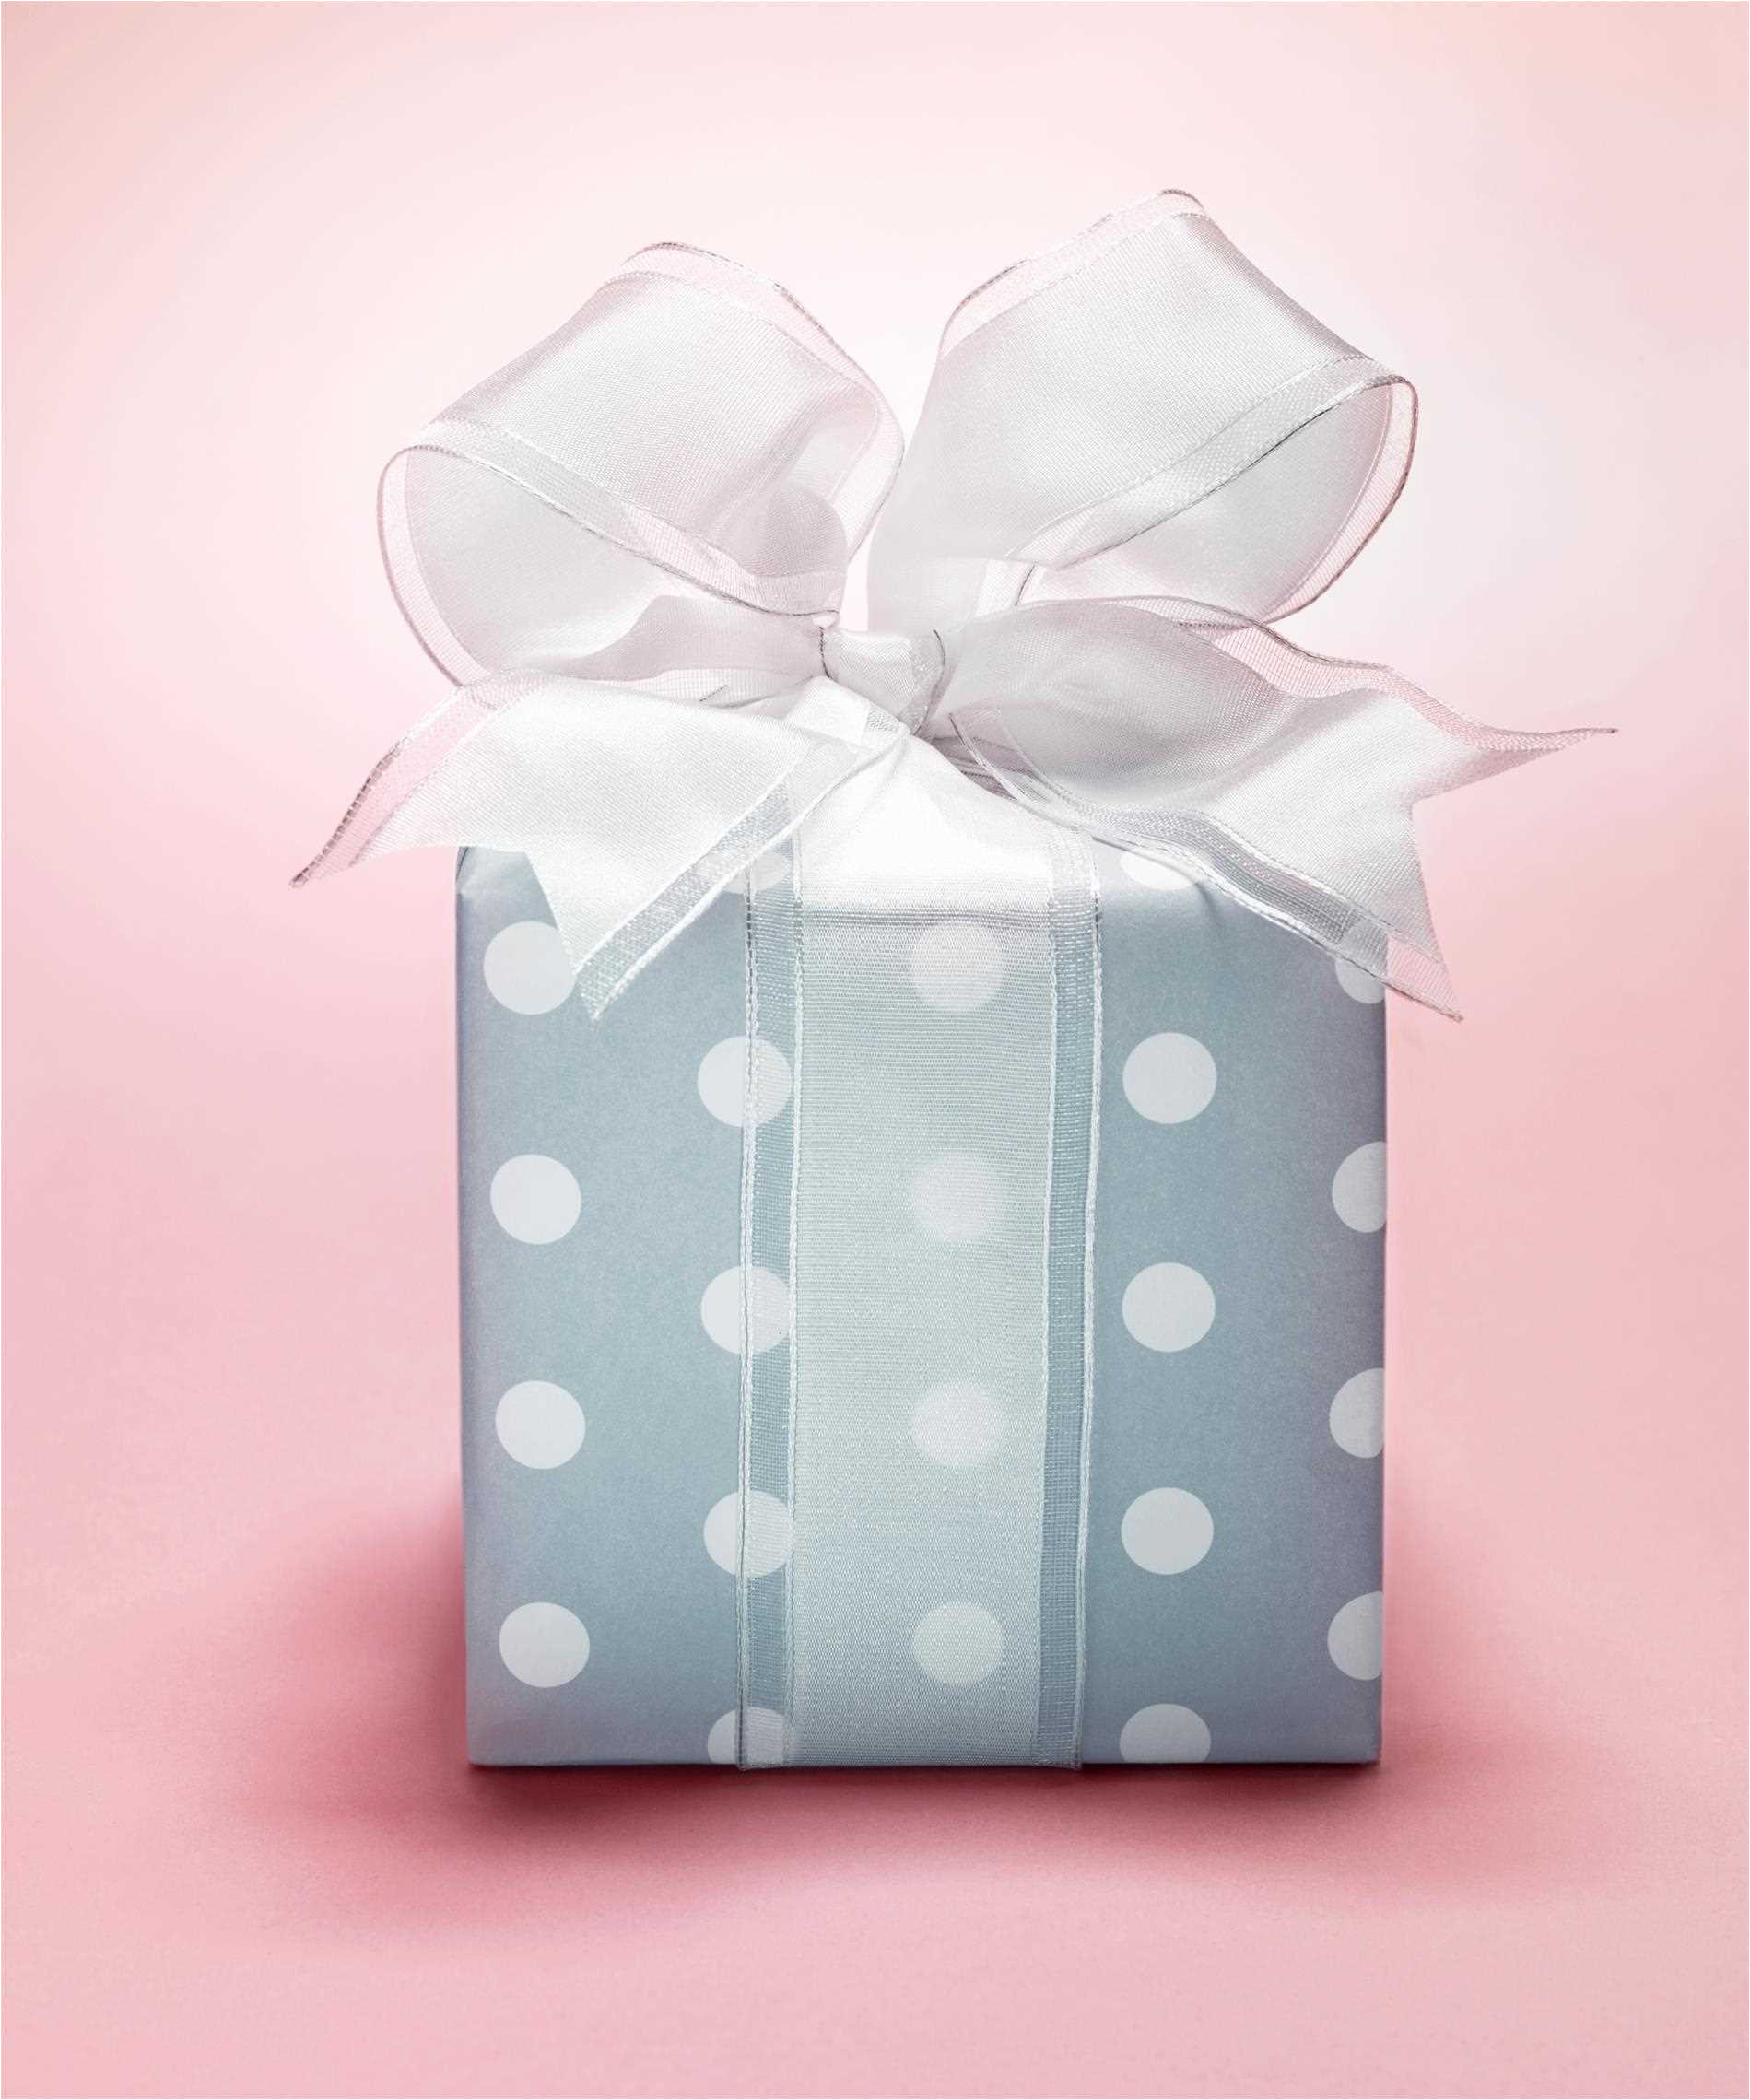 Best ideas about Wedding Gift Ideas For Couple Already Living Together . Save or Pin Inspirational Wedding Gift Ideas for Couple Already Living Now.